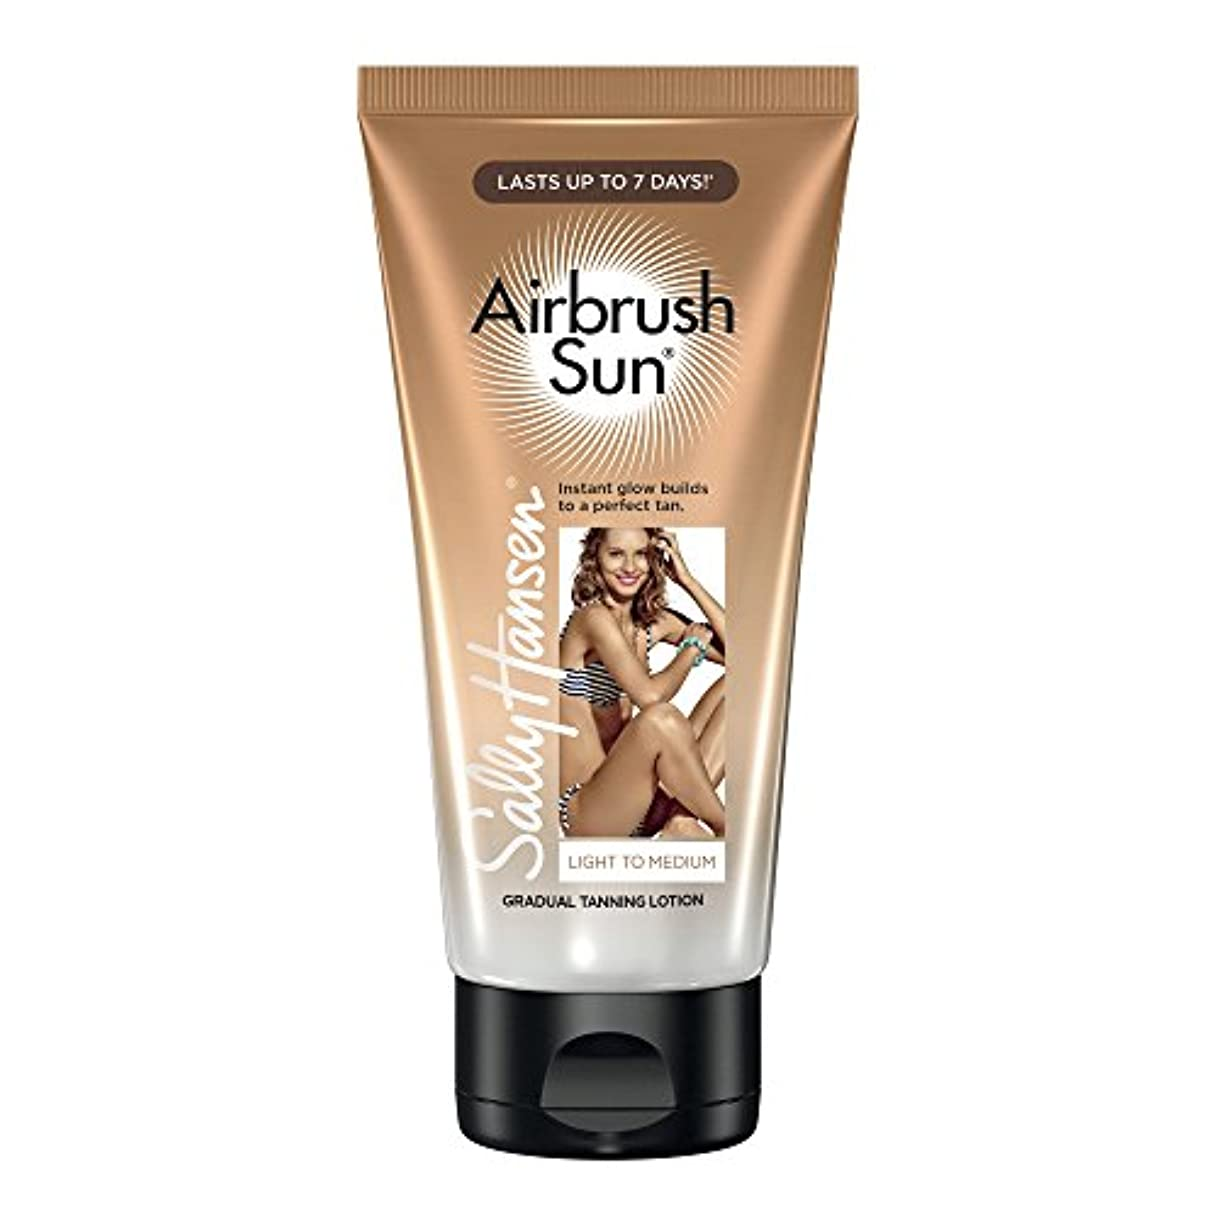 細い麻酔薬納税者SALLY HANSEN Airbrush Sun Tanning Lotion - Light To Medium (並行輸入品)